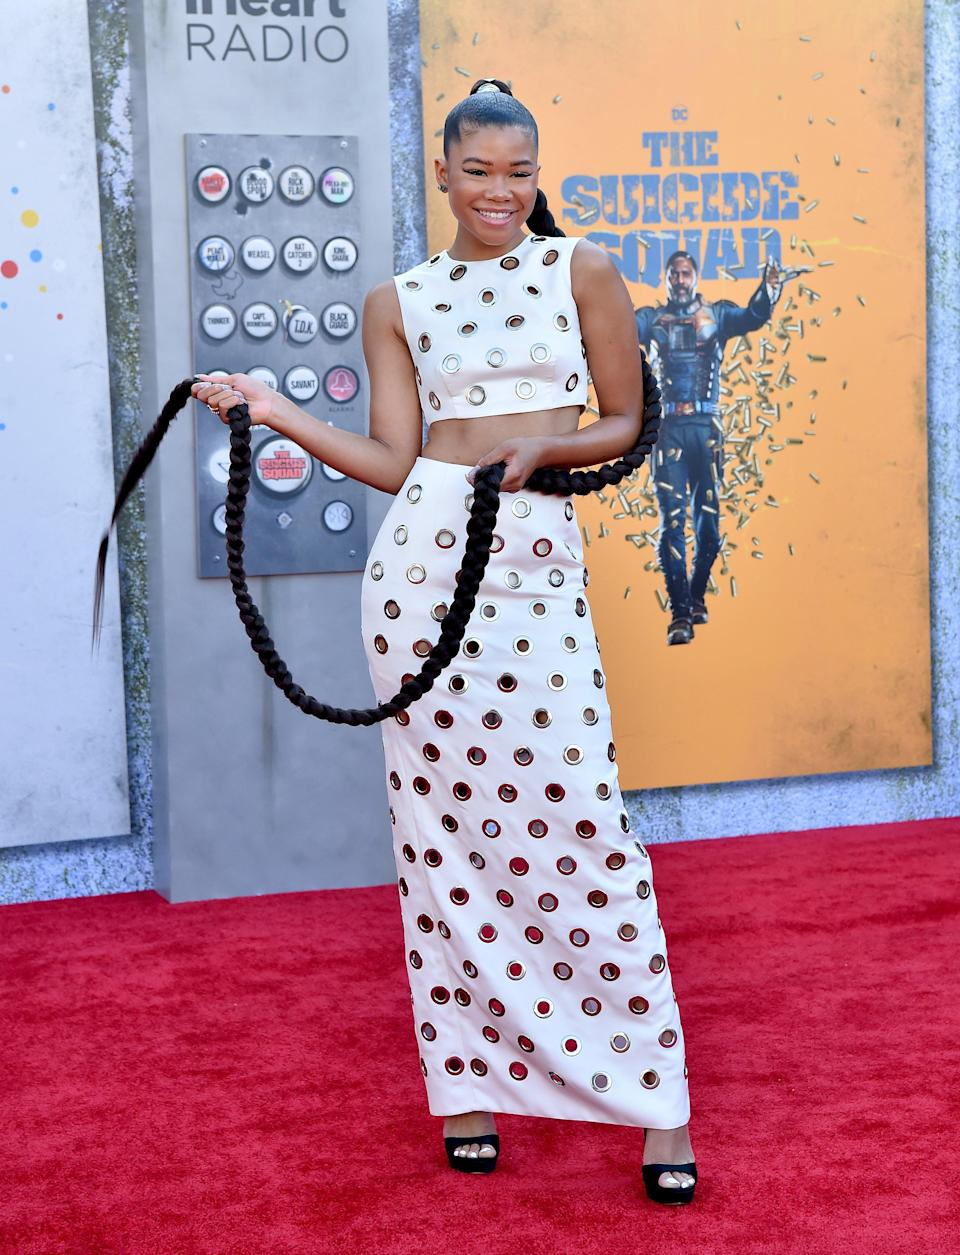 """Storm Reid attends the premiere of """"The Suicide Squad"""" at The Landmark Westwood in Los Angeles, CA. - Credit: AXELLE/BAUER-GRIFFIN / MEGA"""